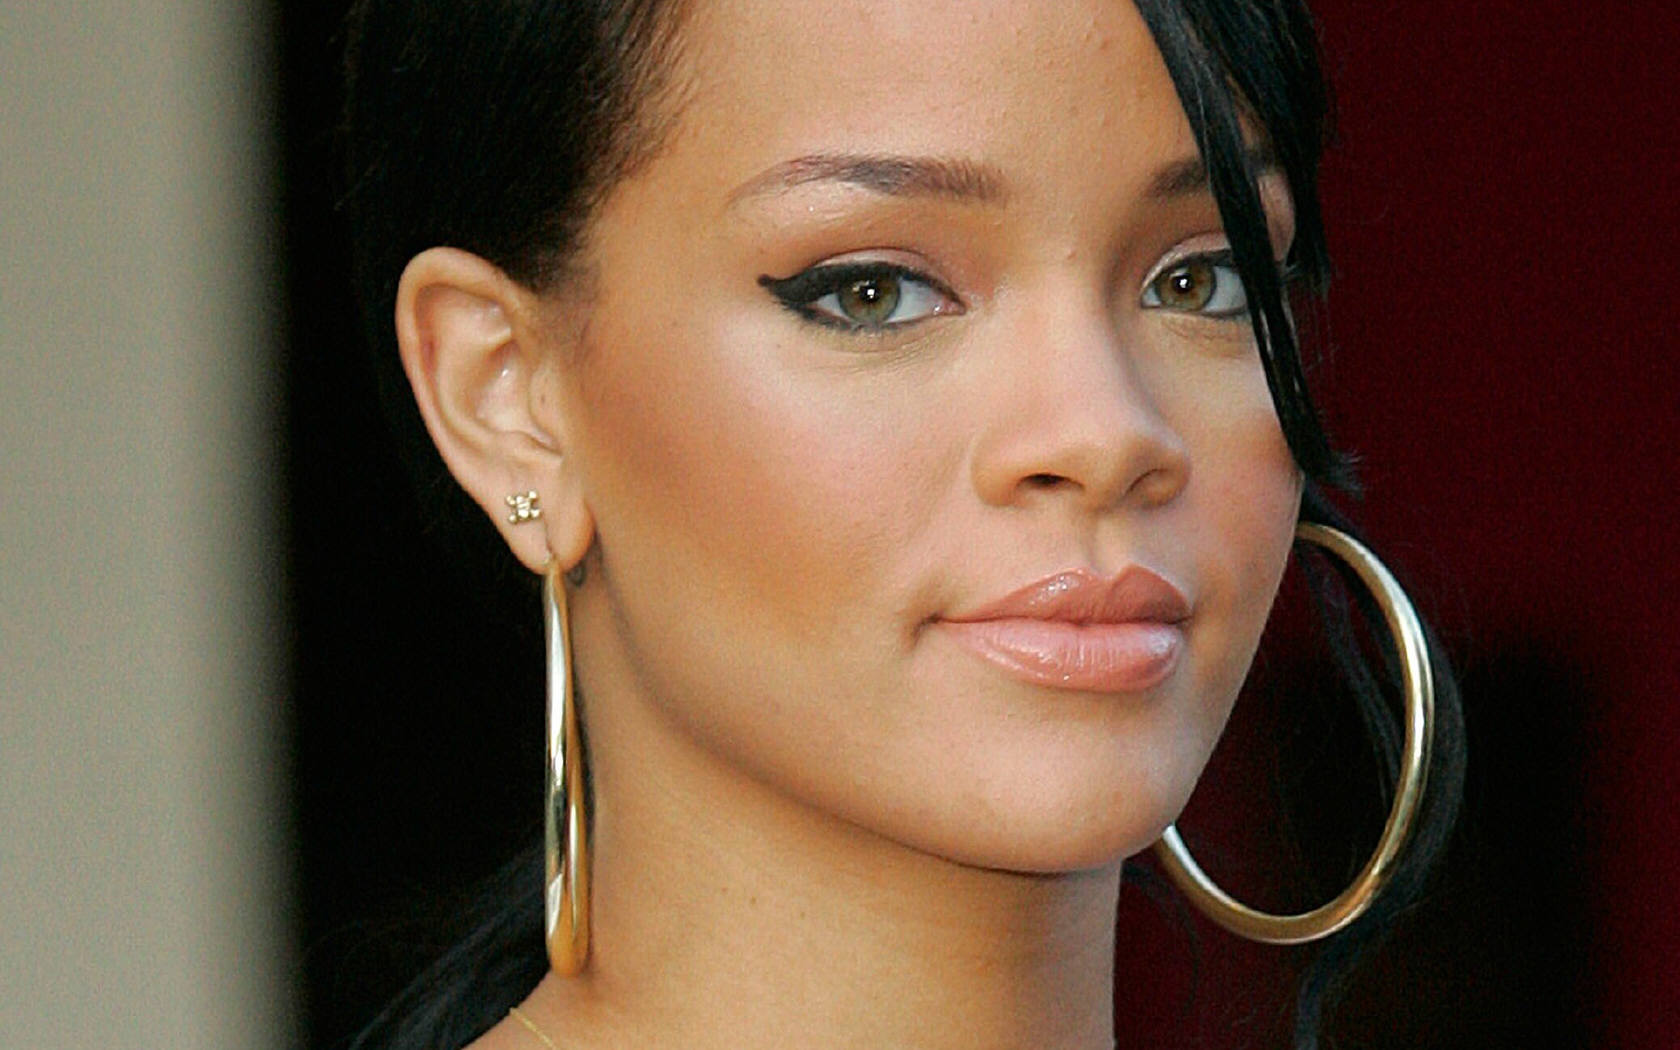 Rihanna Wallpapers - Free Rihanna Wallpapers, Desktop ... Rihanna